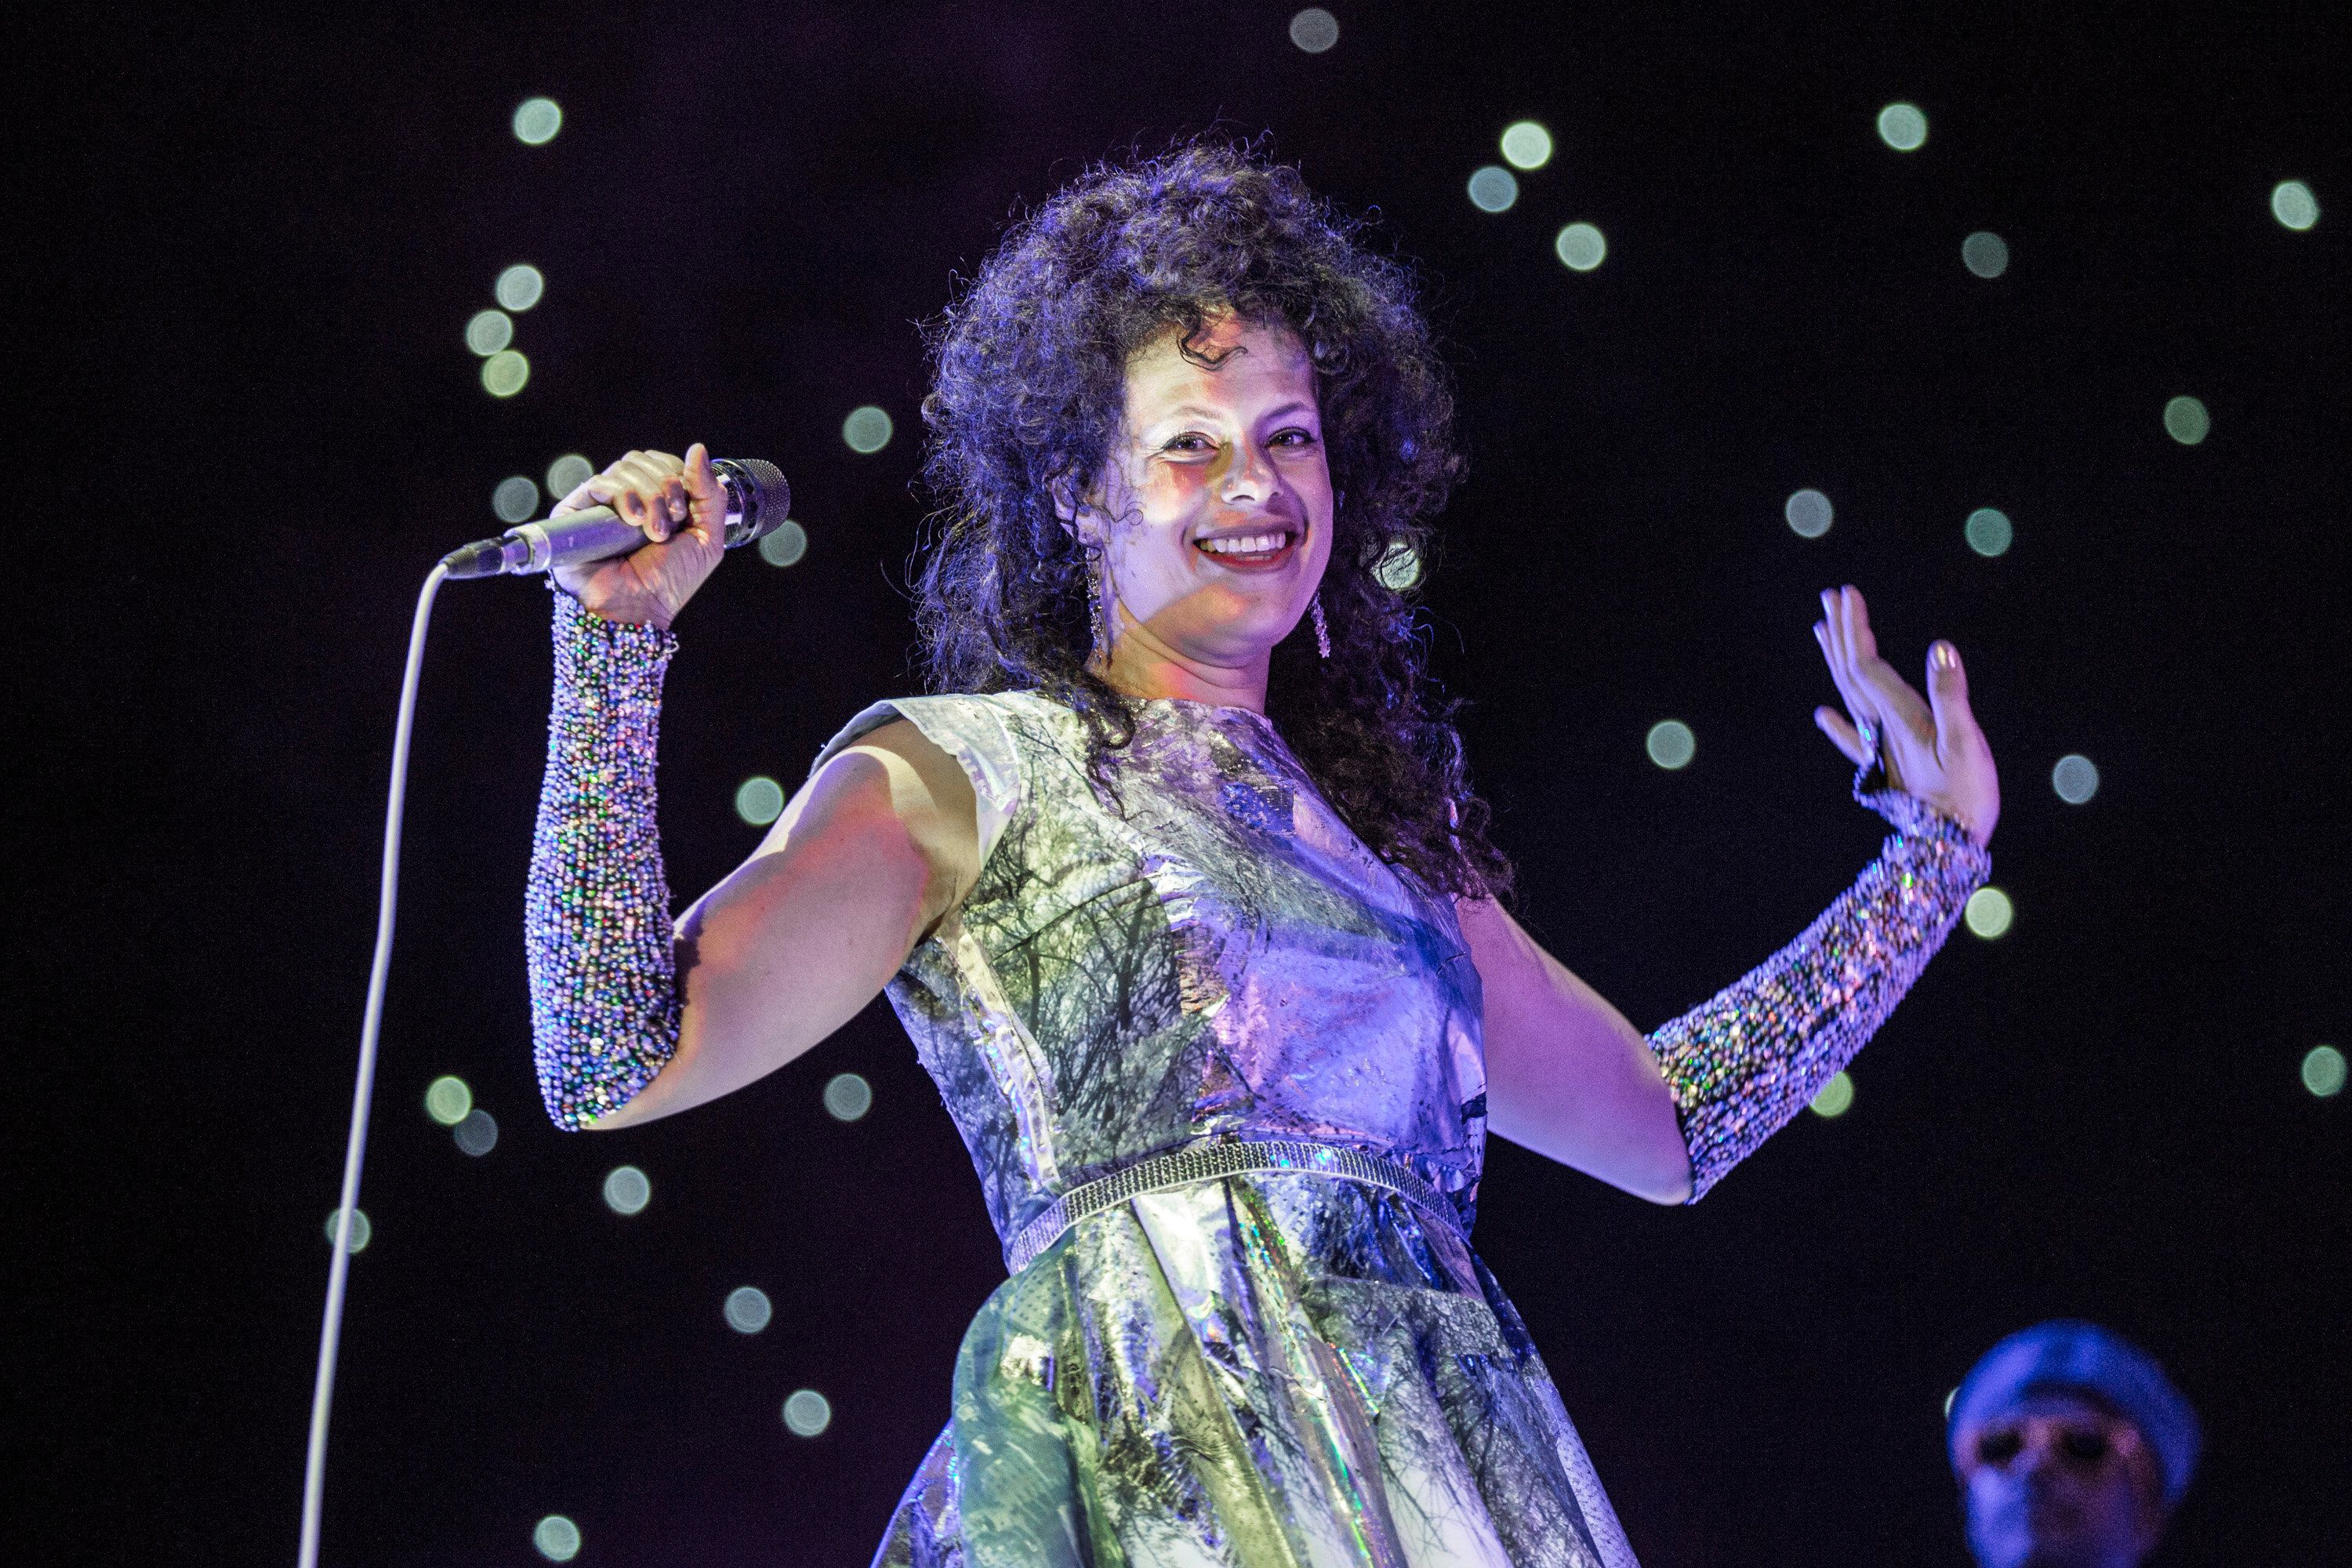 LISBOA CDP, PORTUGAL - JULY 09:  Regine Chassagne from Arcade Fire performs at NOS Alive on July 9, 2016 in Lisboa CDP, Portugal.  (Photo by Rob Ball/WireImage)